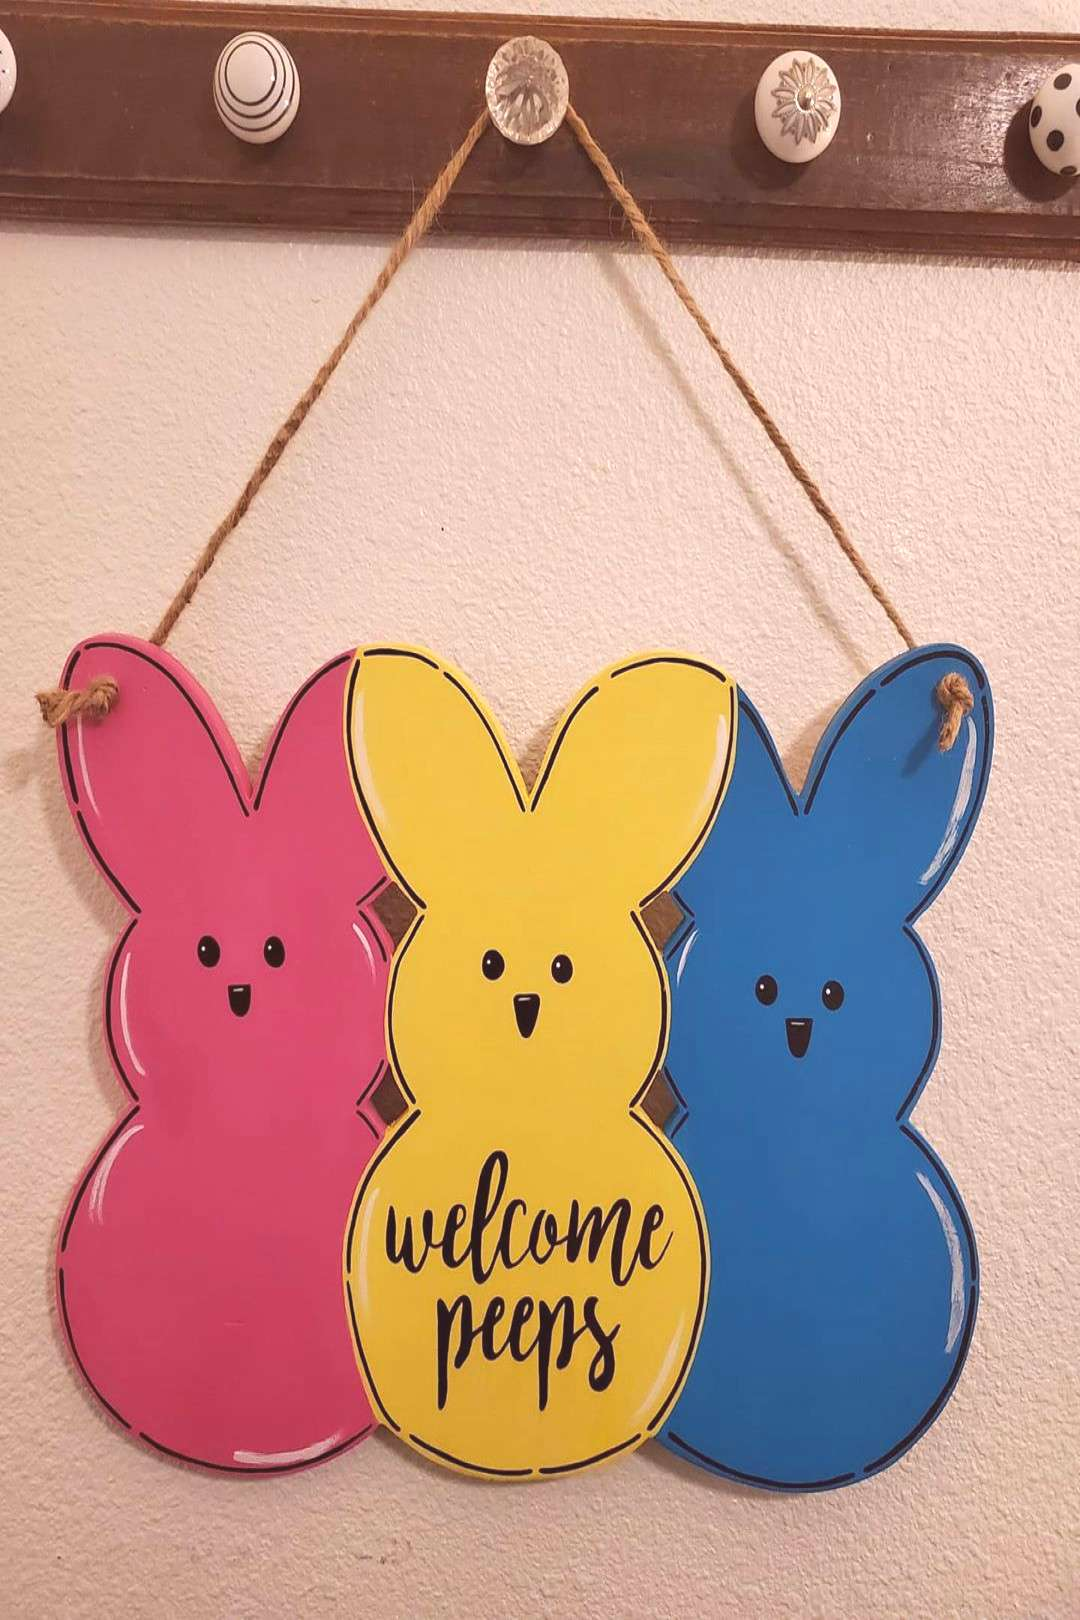 How cute is this quotwelcome peepsquot front door sign for easter?! It